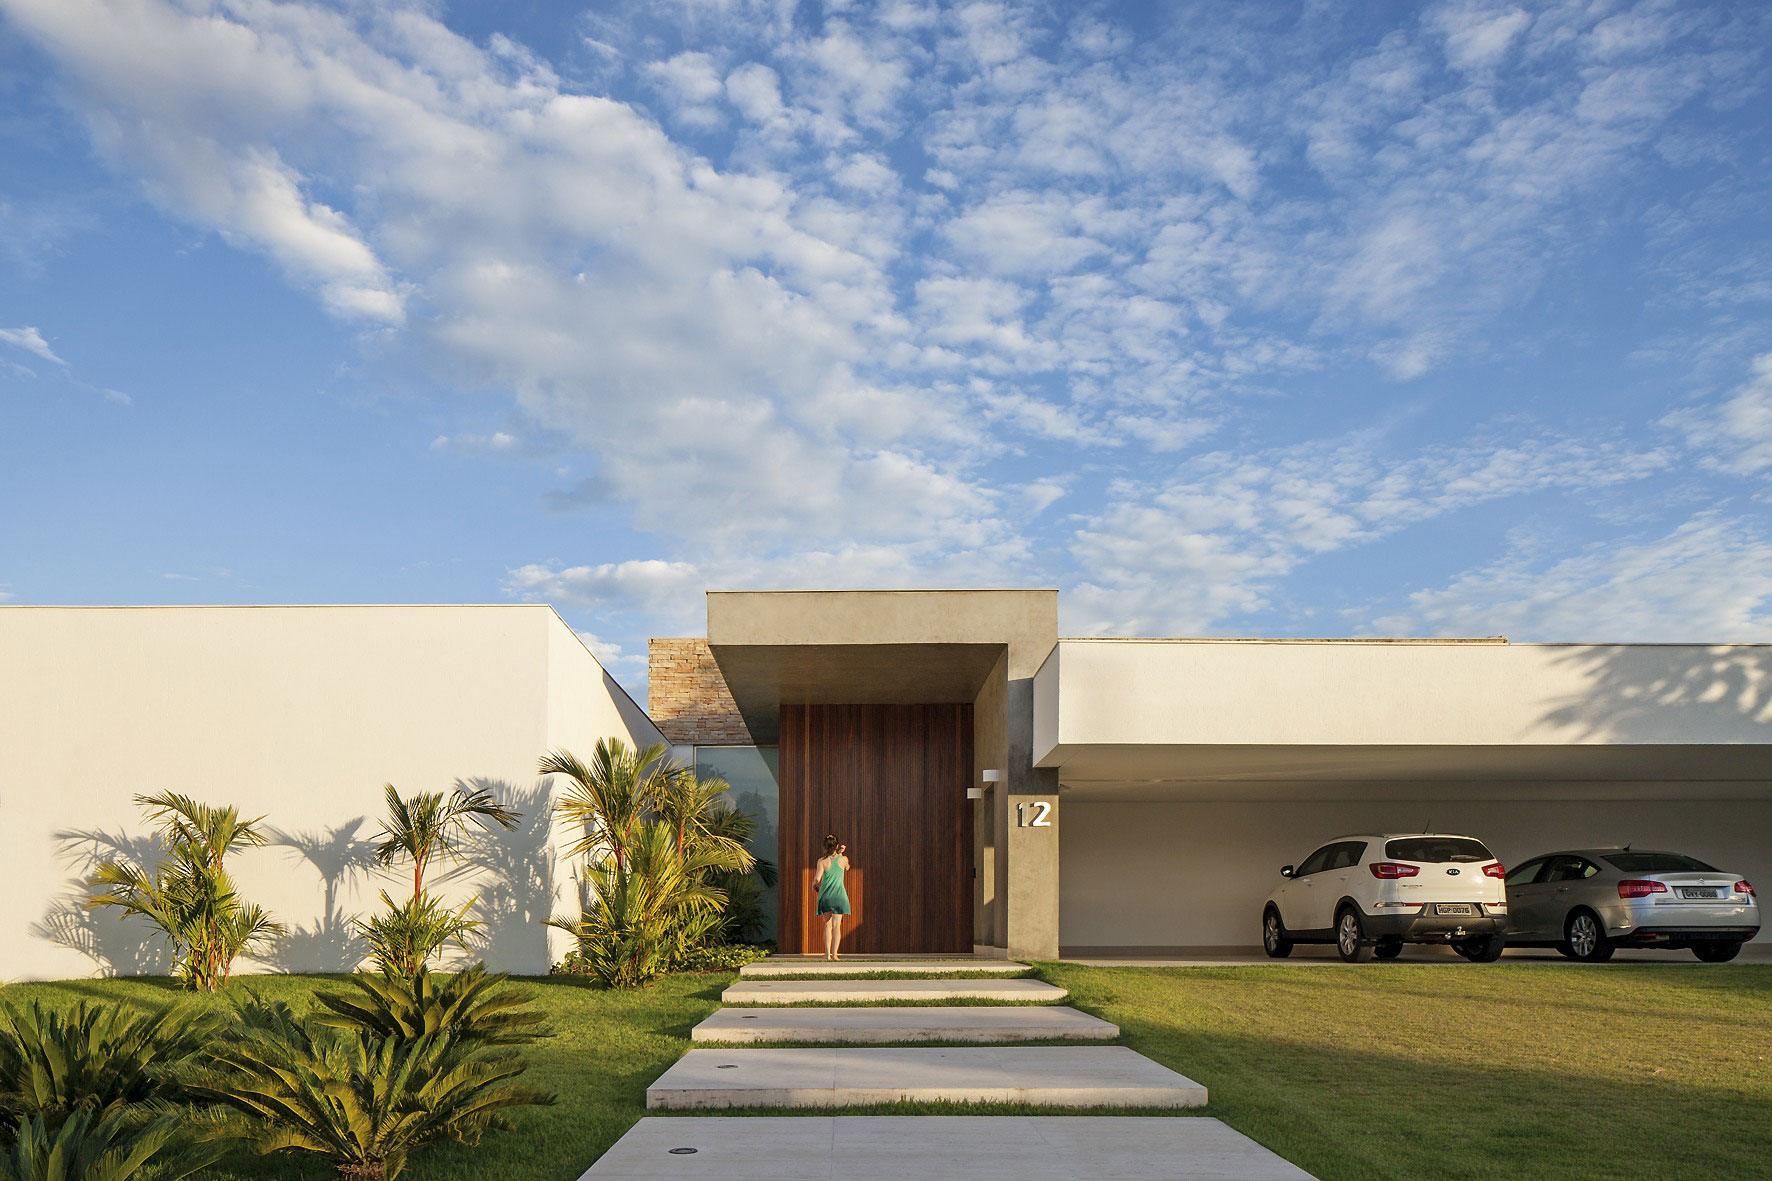 Entrance, Wooden Front Door, Car Port, Home in Uberlandia, Brazil